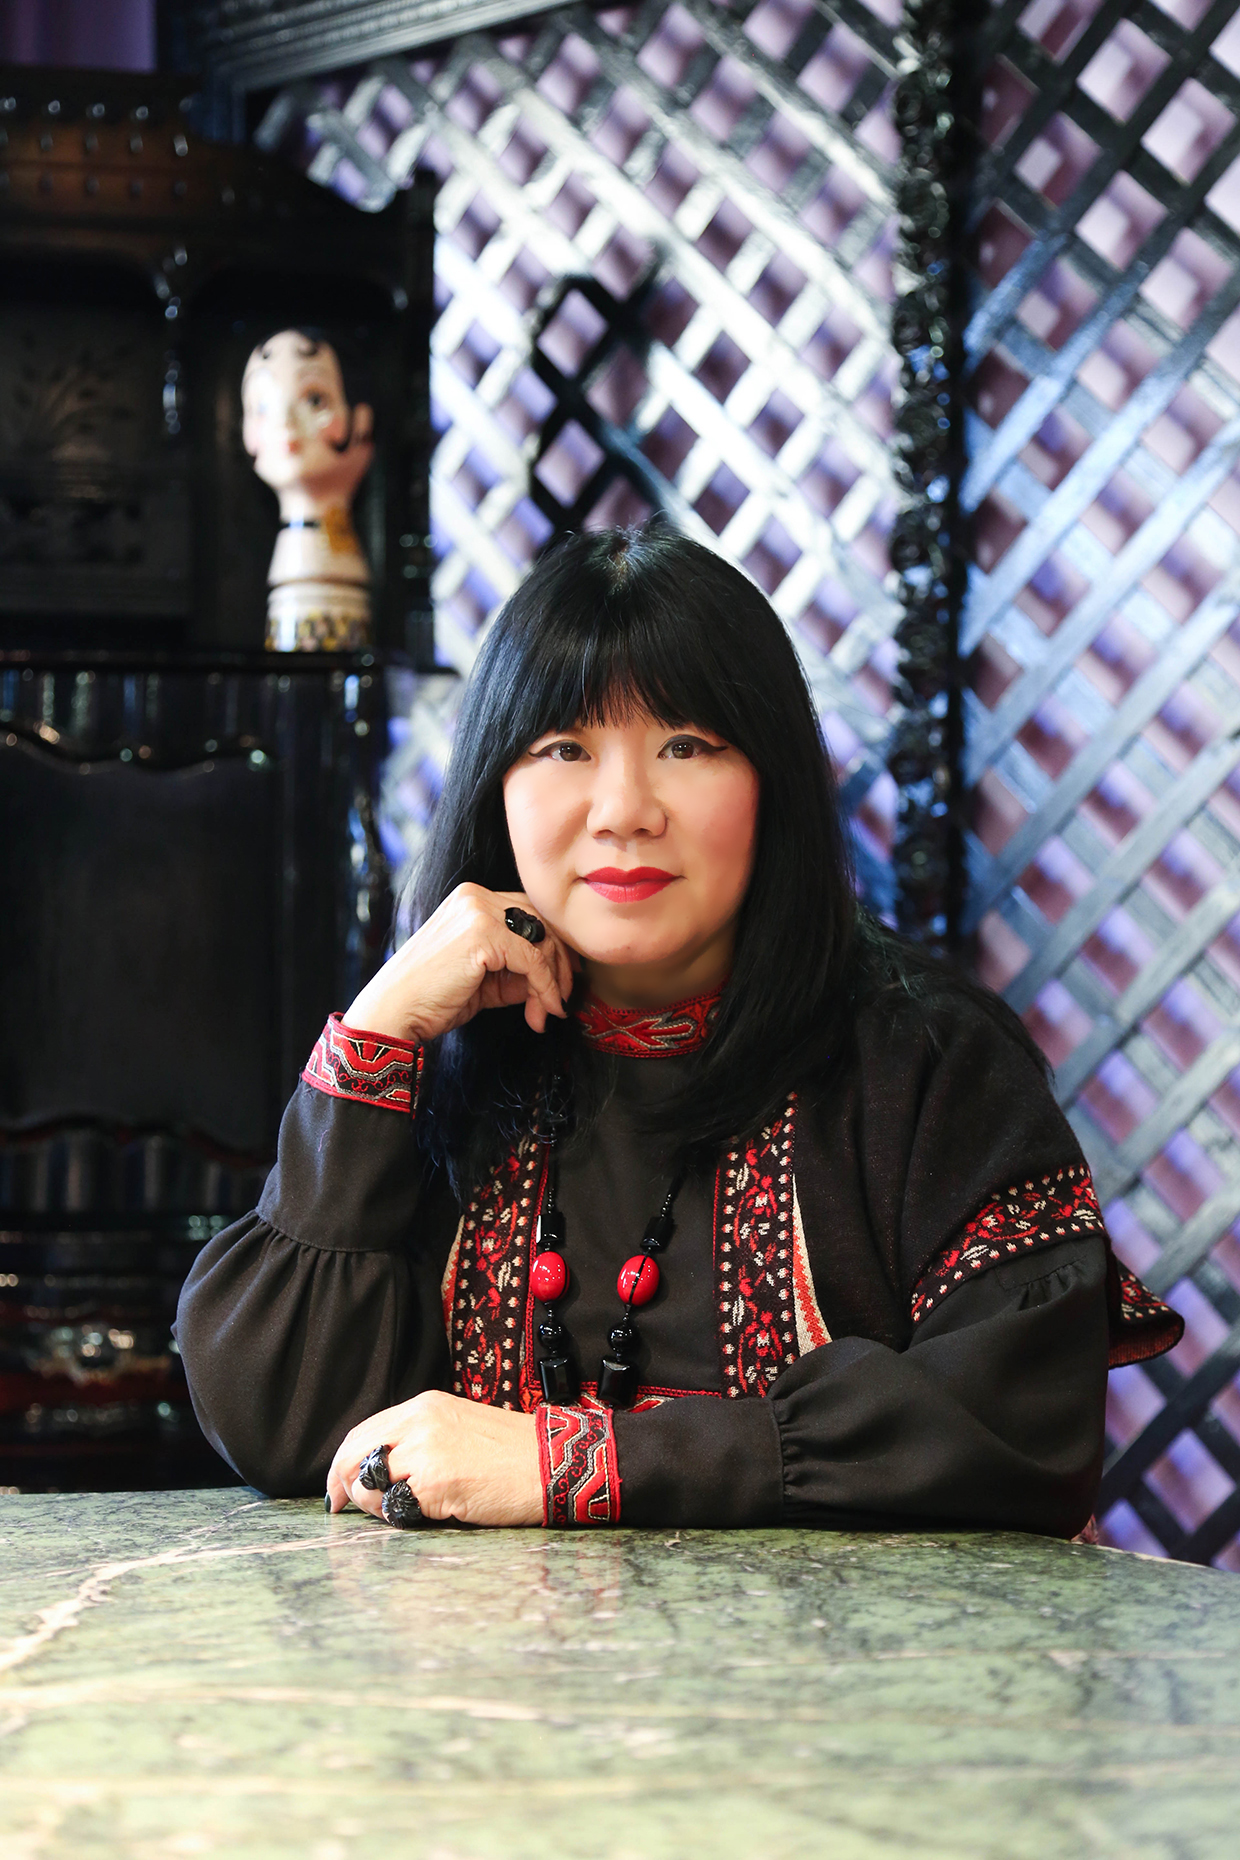 Anna Sui Fall Winter 2014 2015 New Women S Clothing Styles: Anna Sui, Fashion Designer, Interview 2015